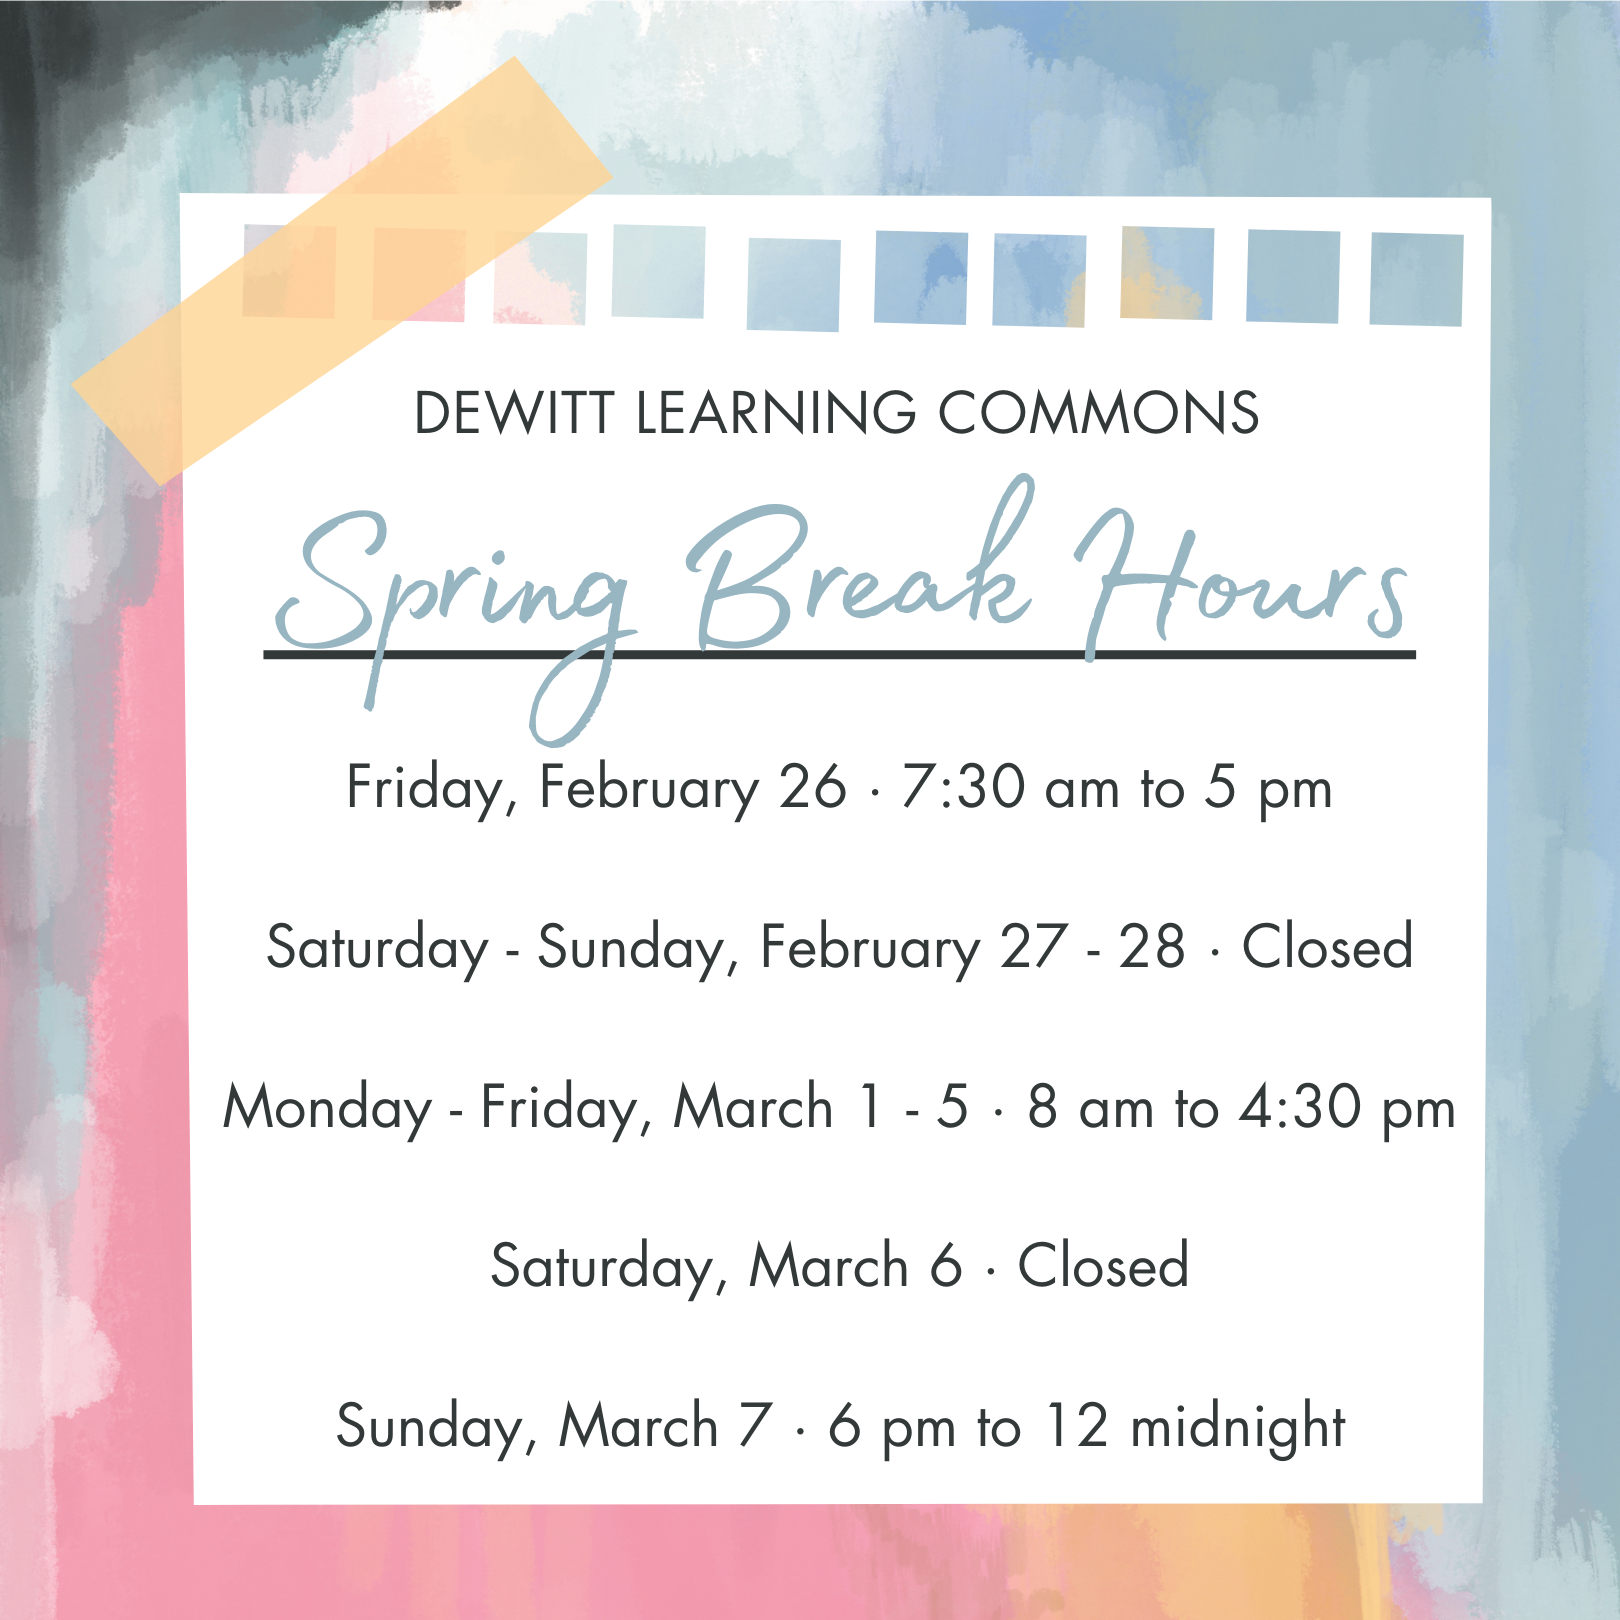 DeWitt Learning Commons Spring Break Hours: Friday, February 26 · 7:30 am to 5 pm;  Saturday - Sunday, February 27 - 28 · Closed;  Monday - Friday, March 1 - 5 · 8 am to 4:30 pm;  Saturday, March 6 · Closed;  Sunday, March 7 · 6 pm to 12 midnight